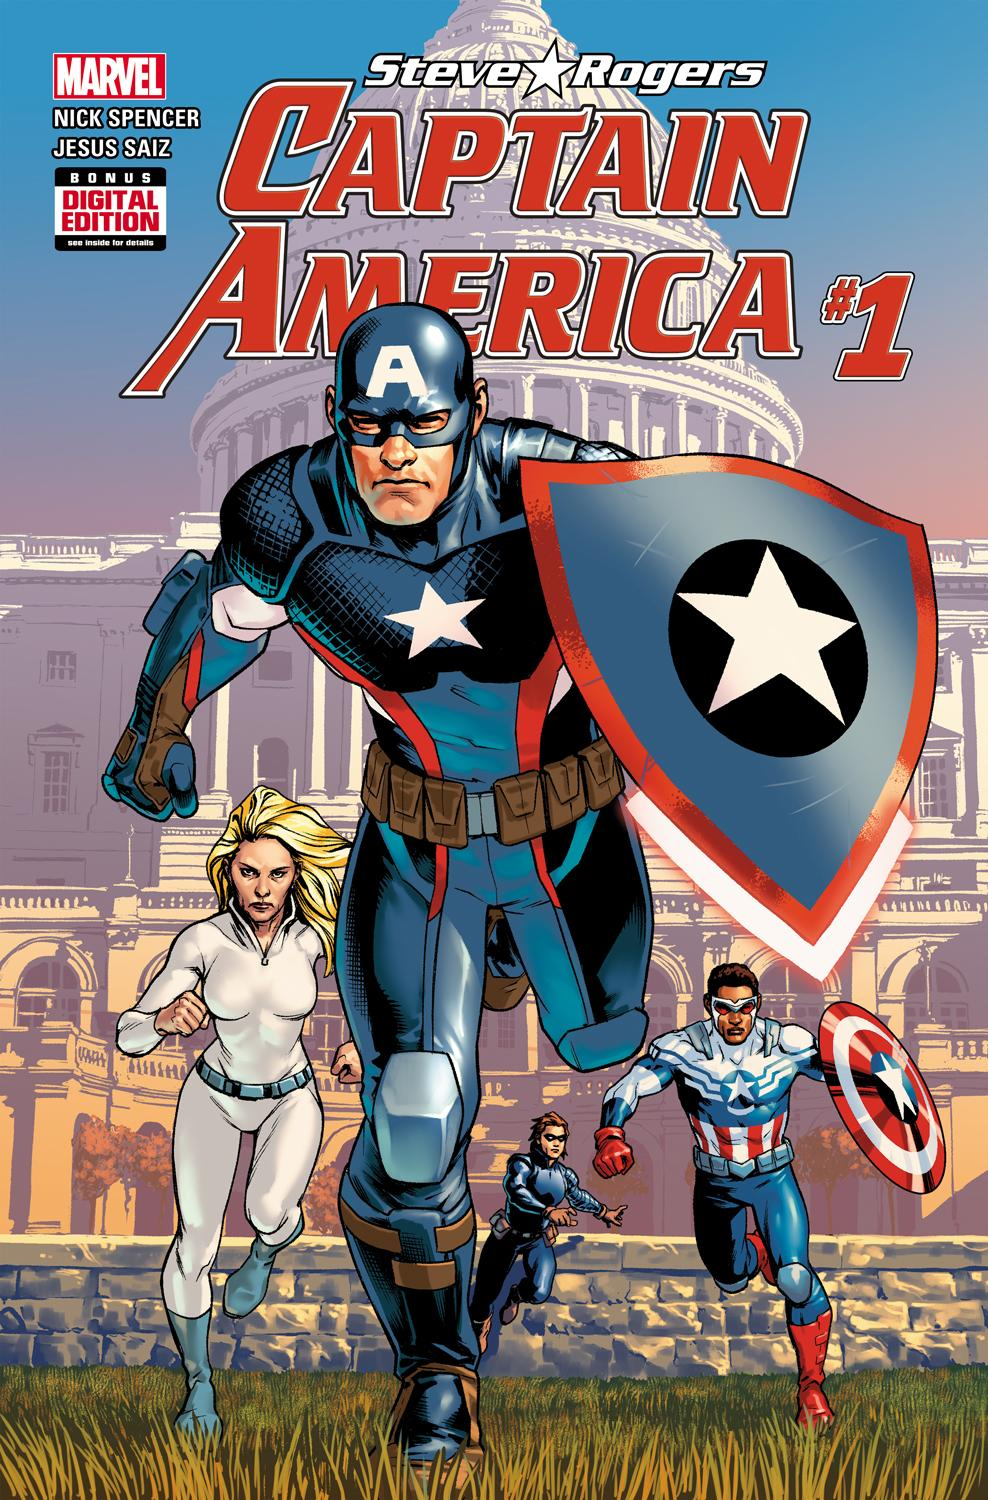 captain america as the embodiment of american ethics and values of the world war ii